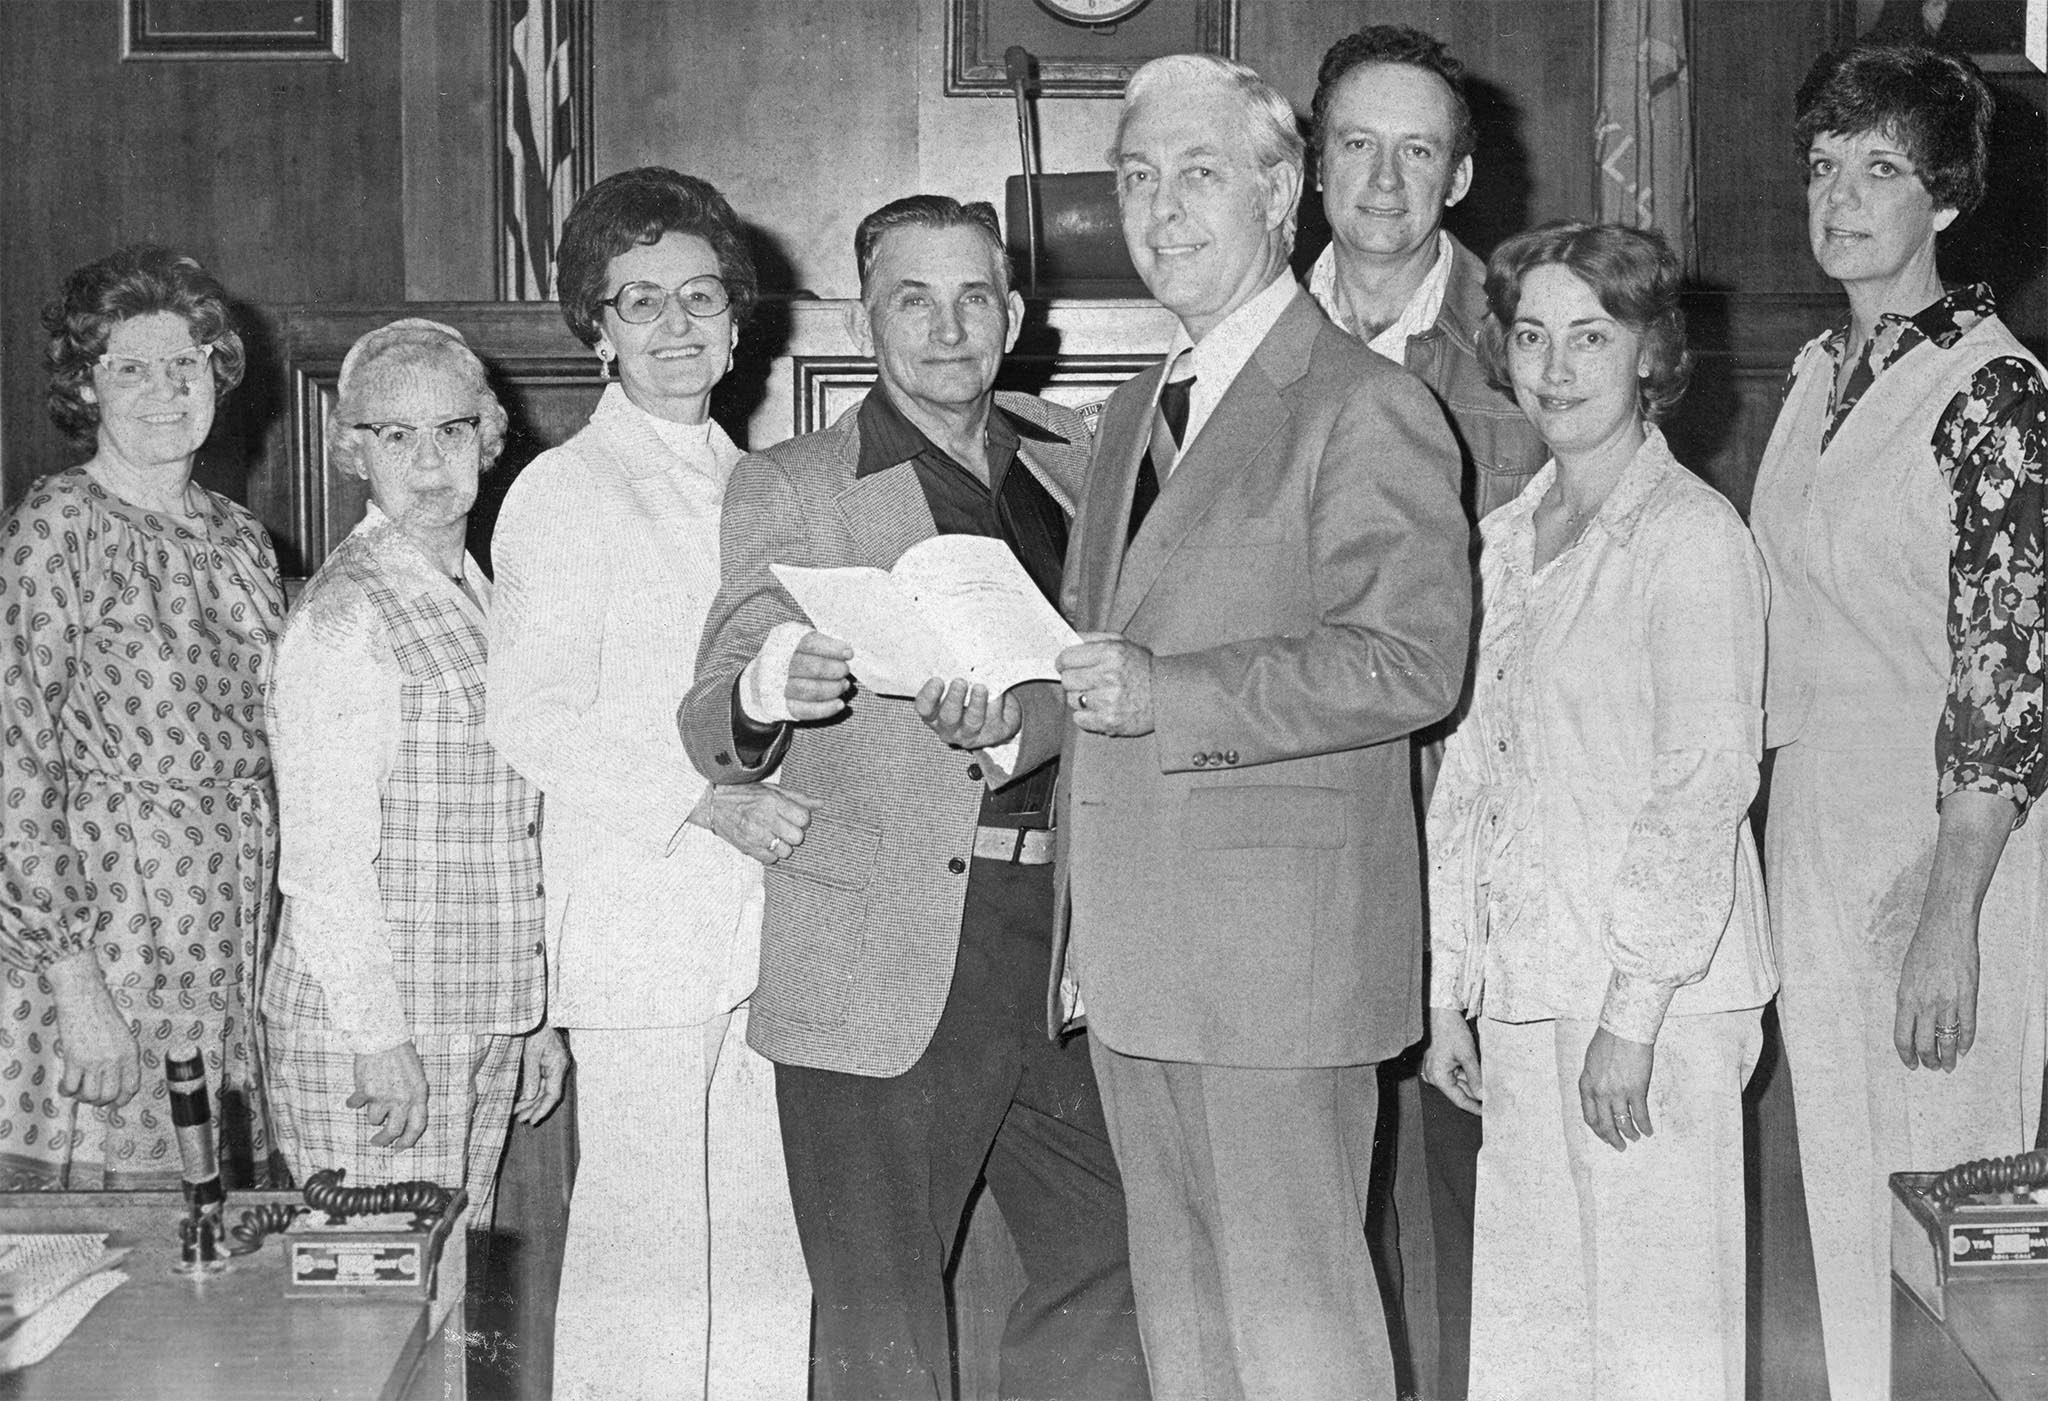 Here, representatives of the Muskogee County Farm Bureau met with State Sen. John Luton, Senate Majority Leader Whip, to discuss agricultural matters in 1979. With Sen. Luton are (left to right) Mrs. Bob Murr of Oktah, Mrs. Dick Helmer of Route Three, Mr. and Mrs. Jim Leeds of Fort Gibson, Sen. Luton, Mr. and Mrs. Robert Plunkett of Route Two and Mrs. Arlie Perry of Fort Gibson.